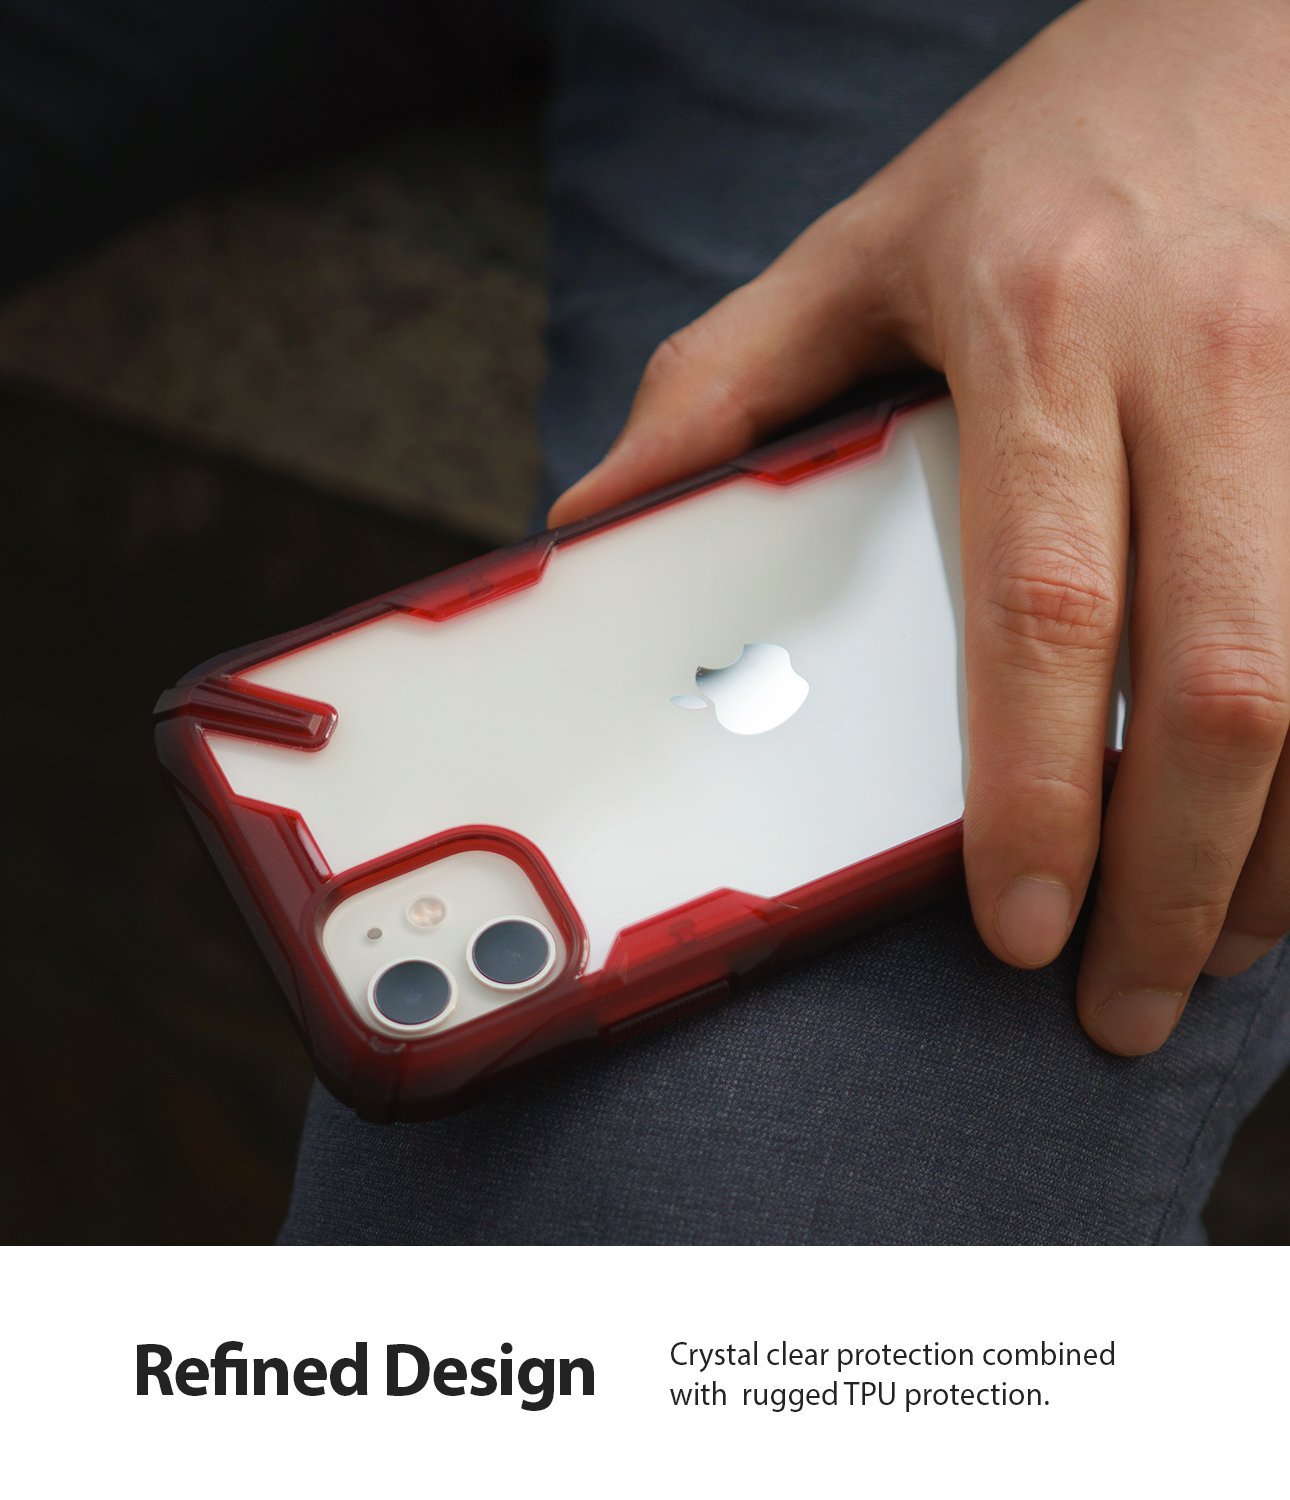 Ringke Fusion-X designed for iPhone 11 Ruby Red Refined Design